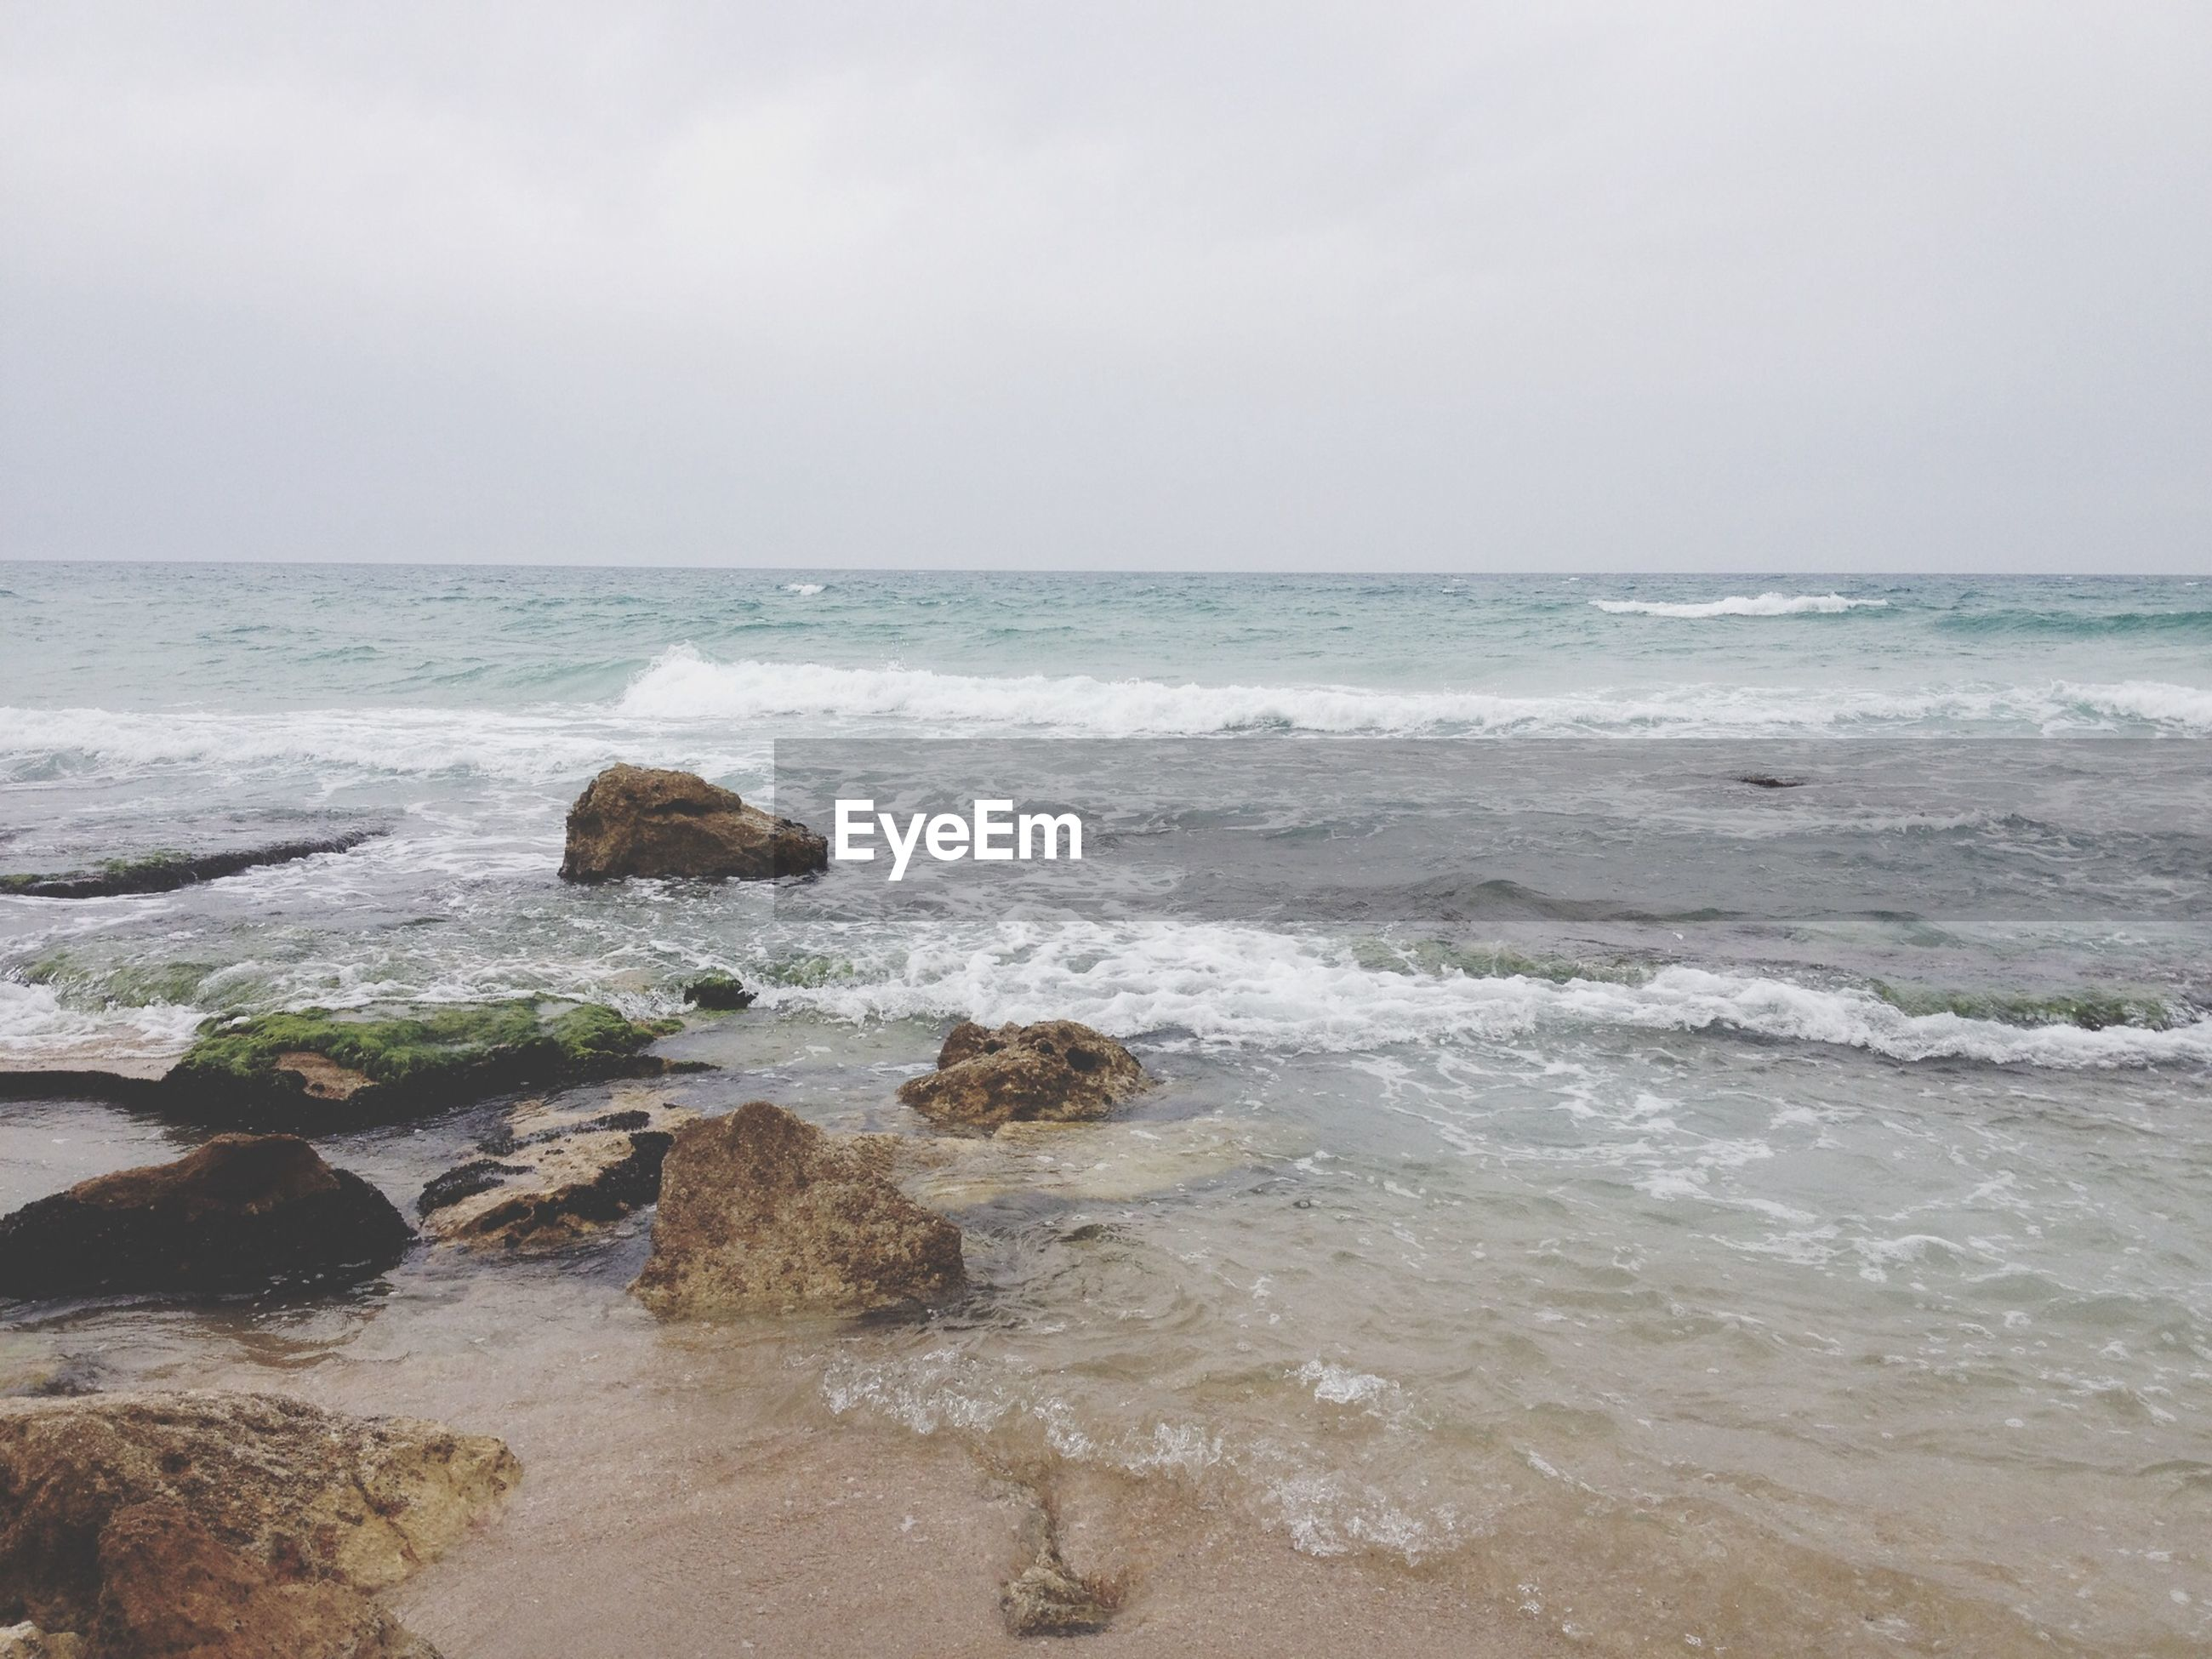 sea, horizon over water, water, beach, scenics, wave, beauty in nature, tranquil scene, shore, tranquility, sky, nature, surf, idyllic, rock - object, remote, sand, seascape, coastline, outdoors